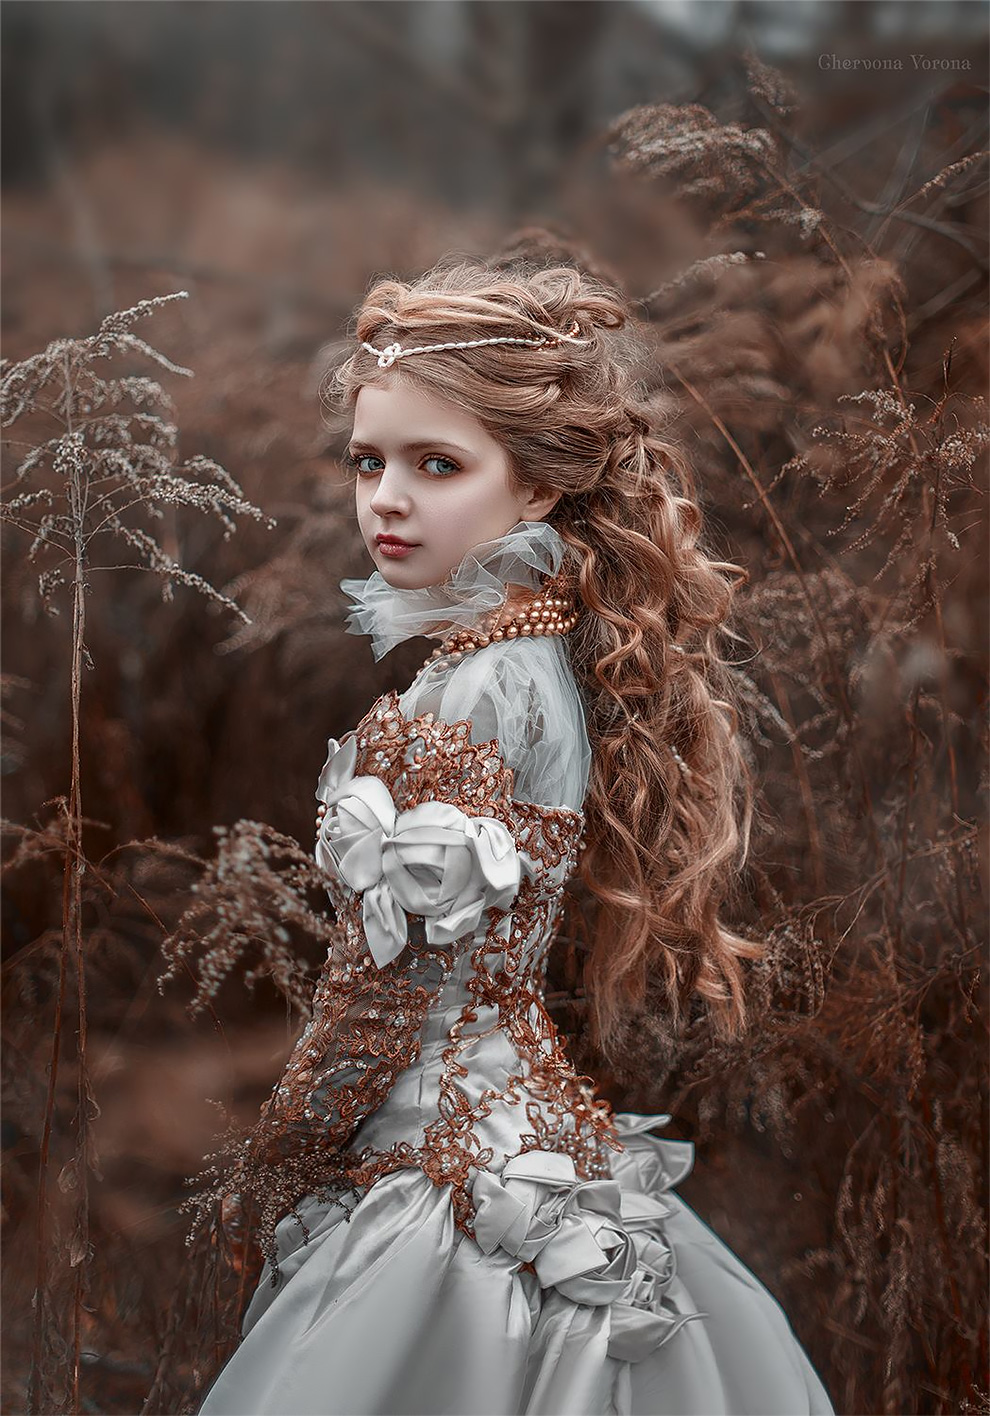 This Ukrainian Photographer Captures A Fairytale Photo Masterpieces 2 This Ukrainian Photographer Captures A Fairytale Photo Masterpieces